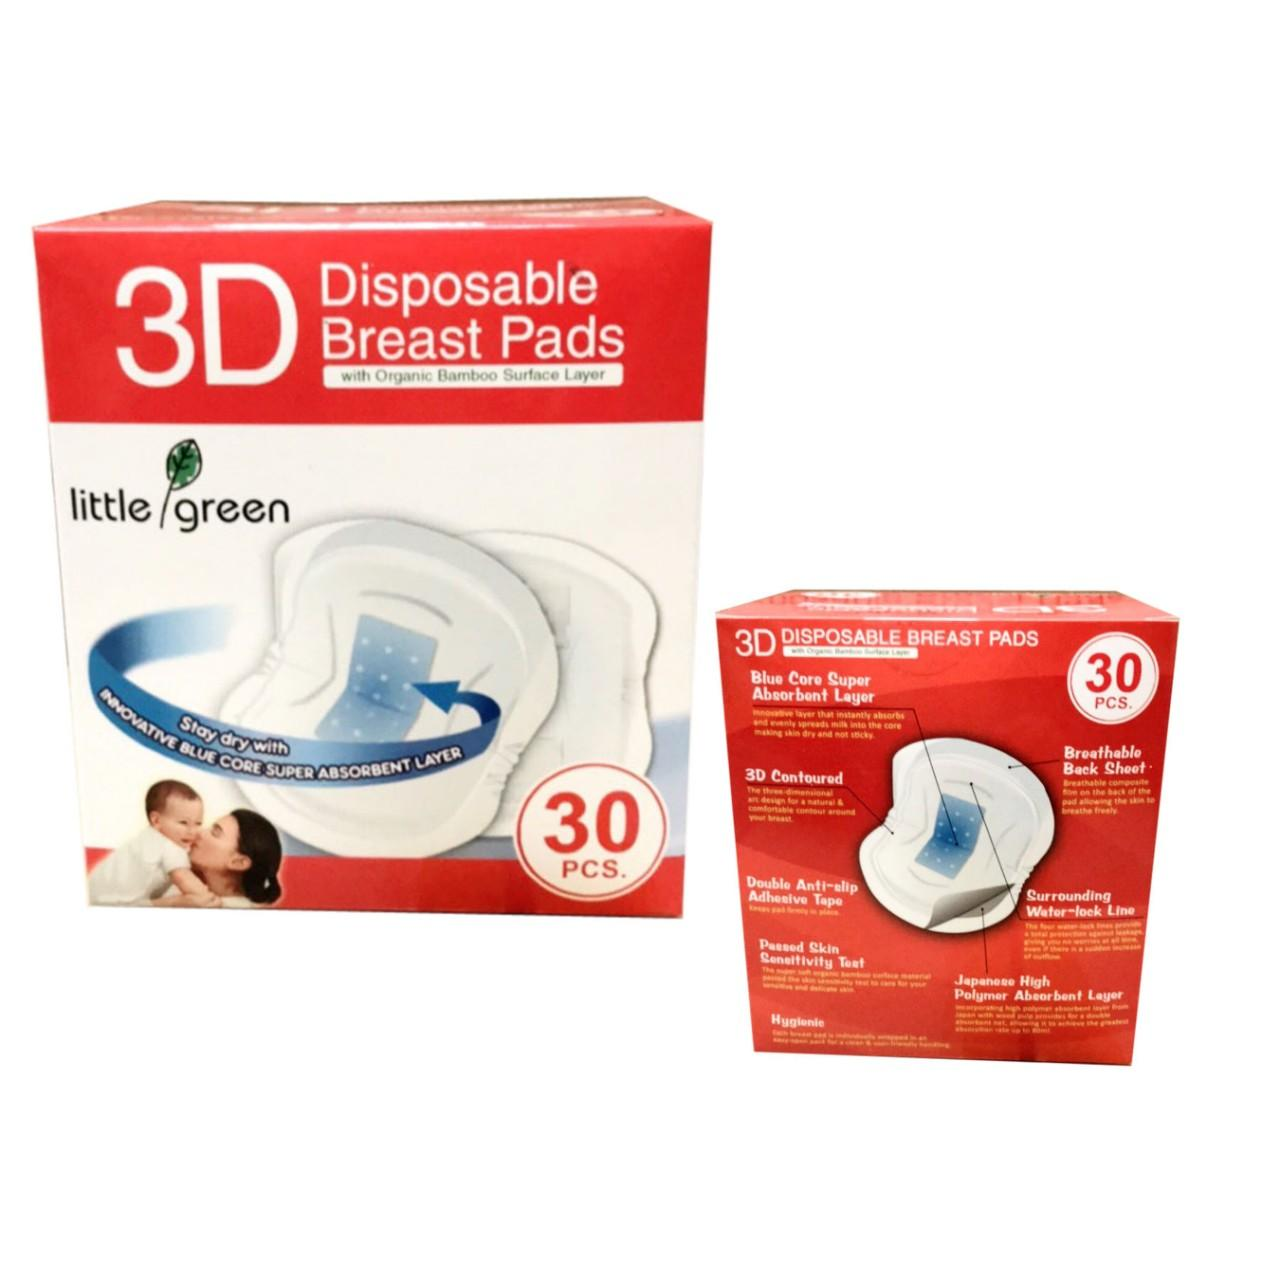 Nipple Shield For Sale Breast Online Brands Prices Avent Breastpads Washable Little Green Disposable With Organic Bamboo Surface Layer 30s